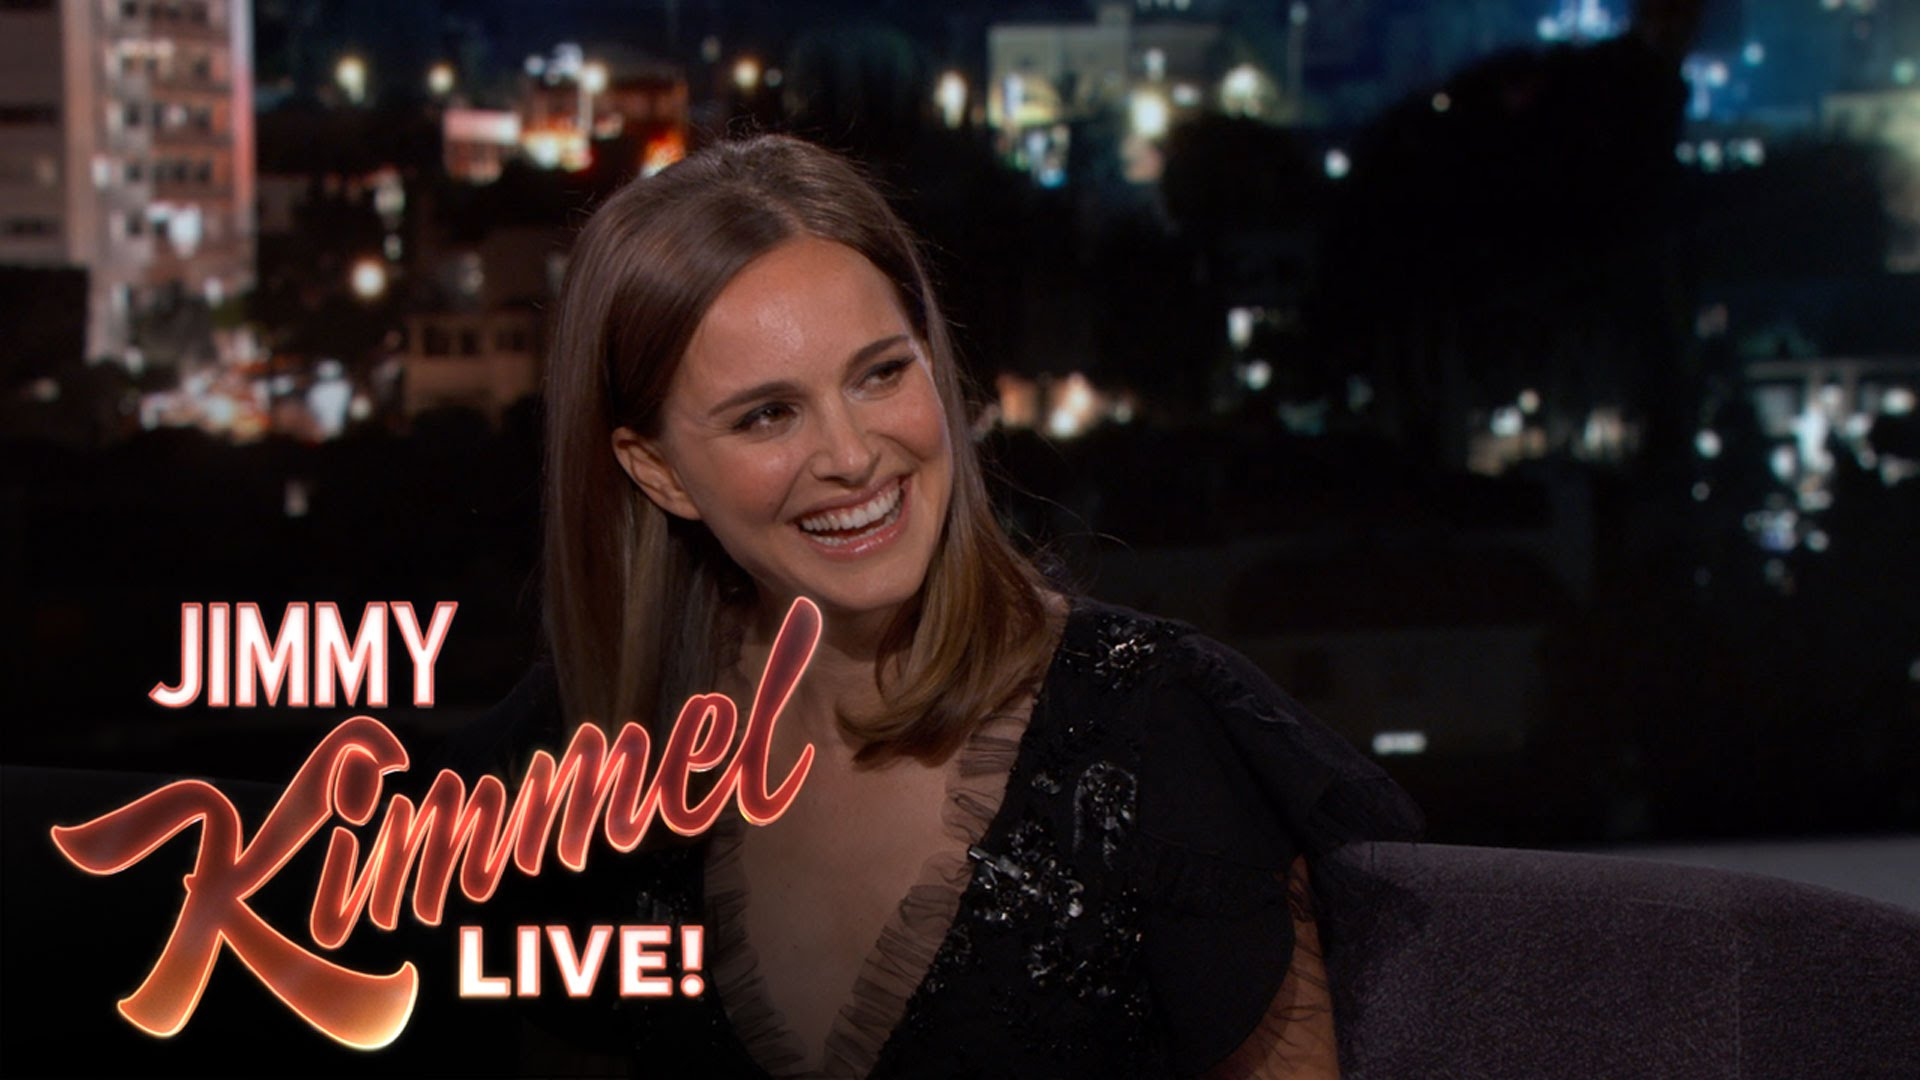 Natalie Portman's son hasn't seen Star Wars prequels